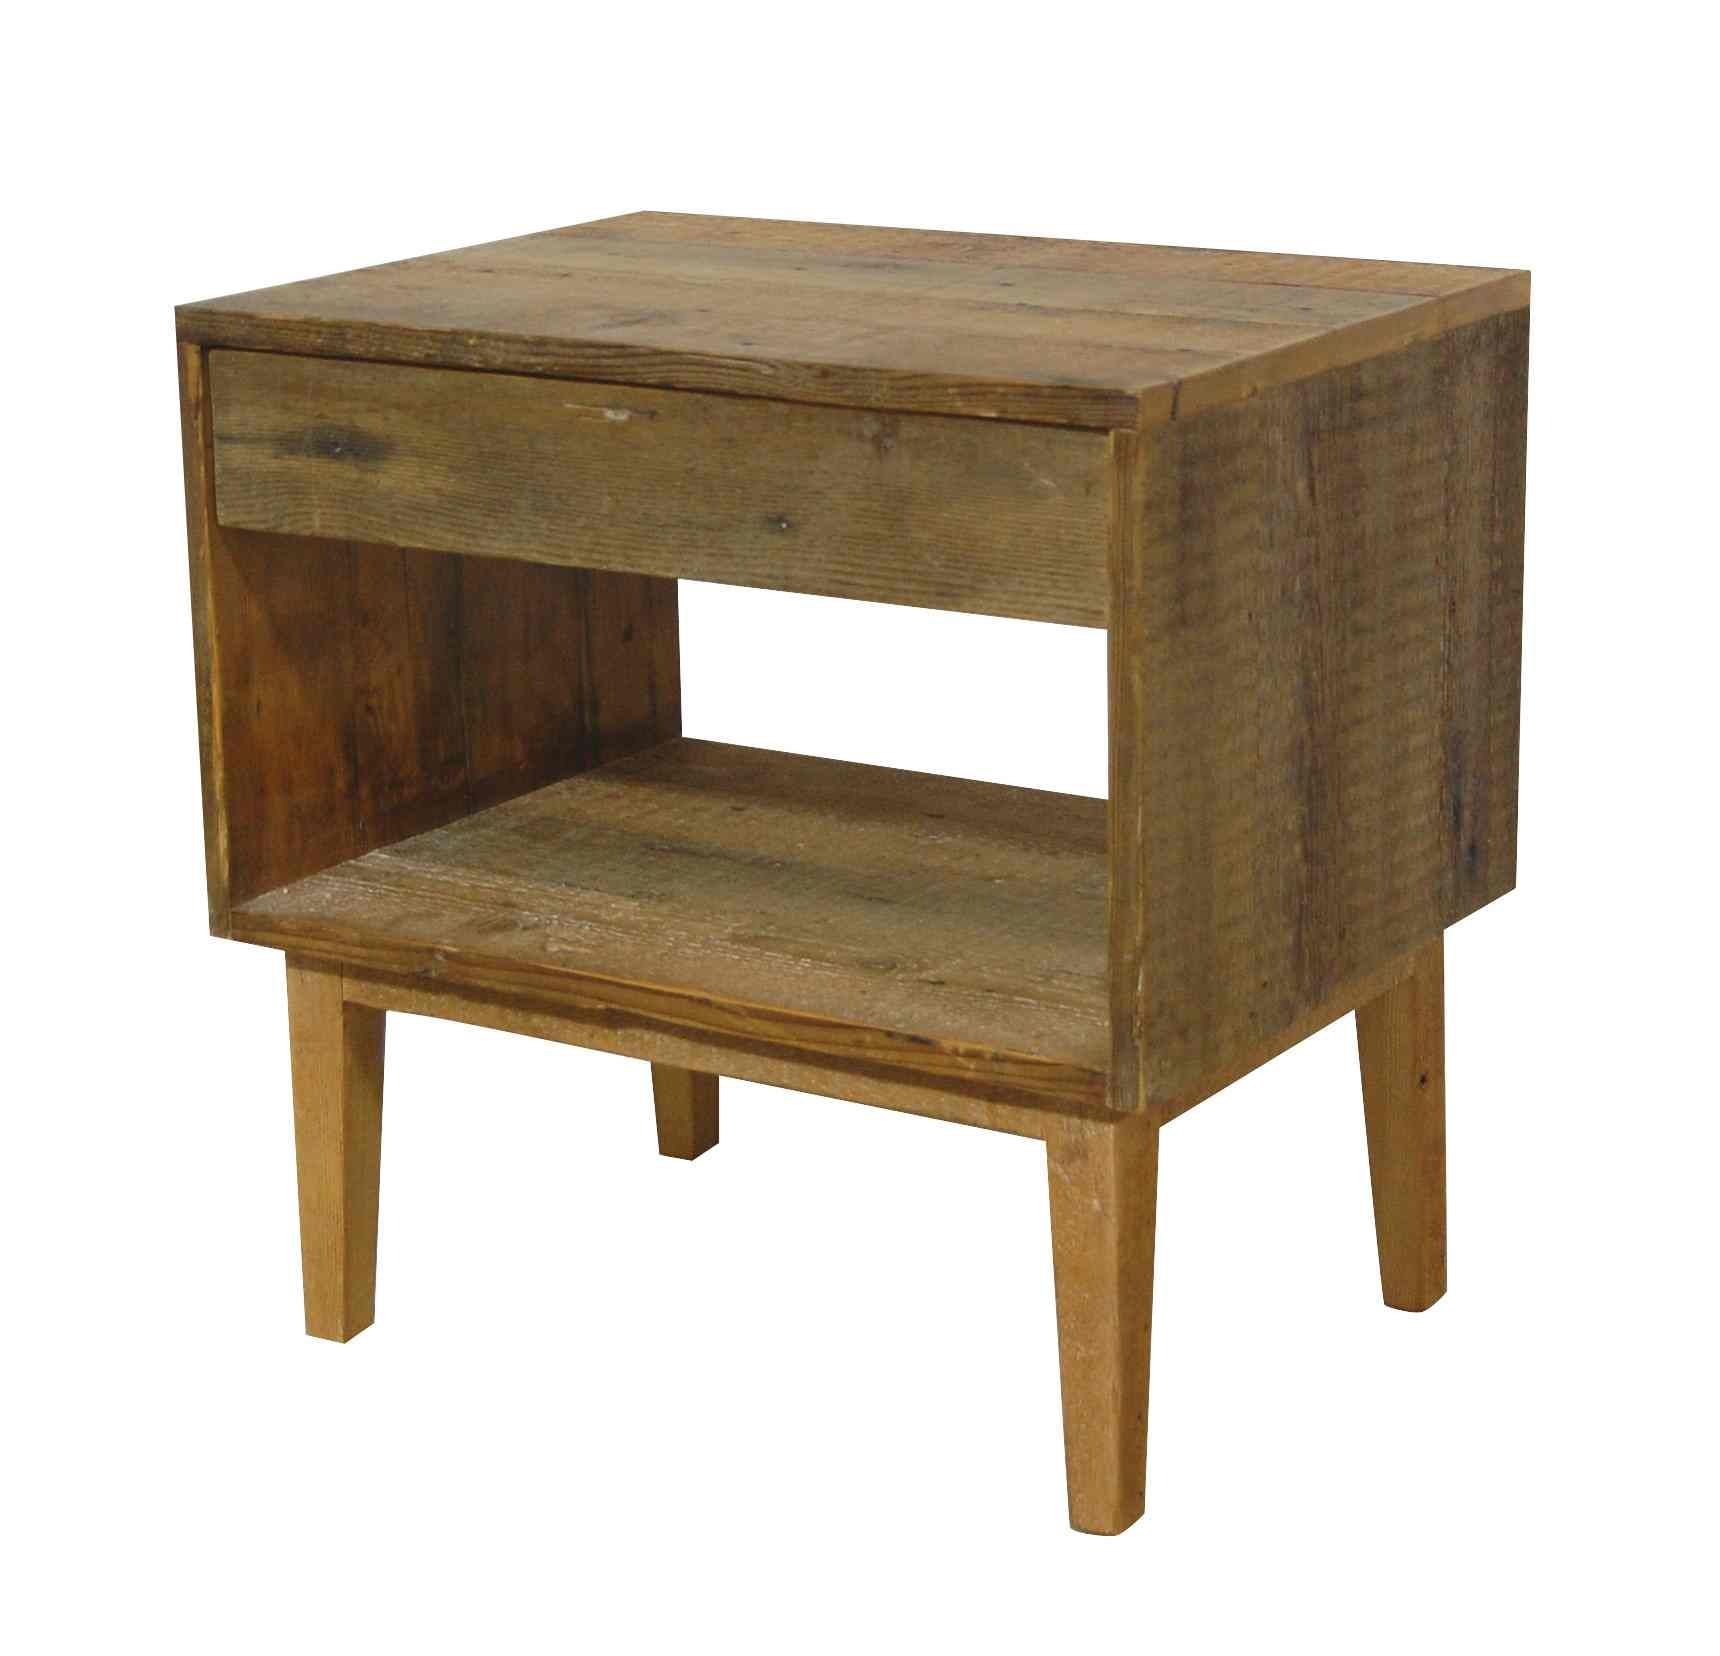 earth friendly furniture. Eco Friendly Furniture For Earth Day \u2013 Made In Los Angeles | Urban Woods F